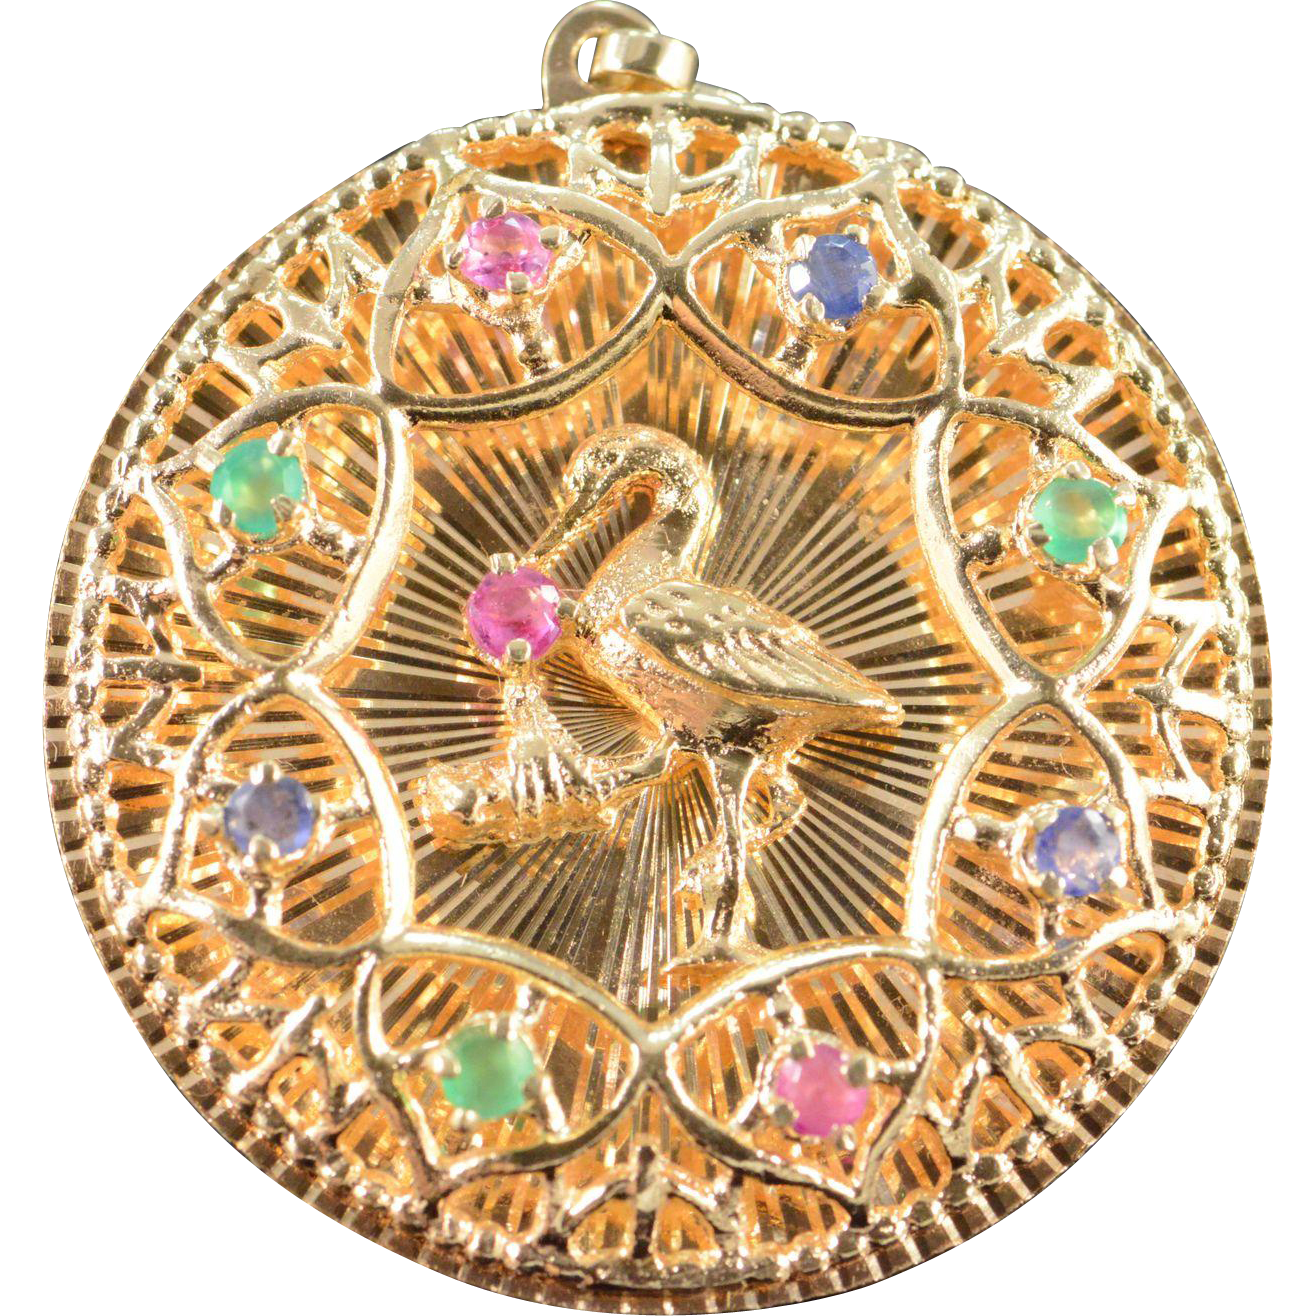 3cf97bb91 14K Vintage Gemstone Stork Newborn Baby Charm/Pendant Yellow Gold..Thy r  charmed that Dave & I want to hv a family & thnk it is golden. Thank you.